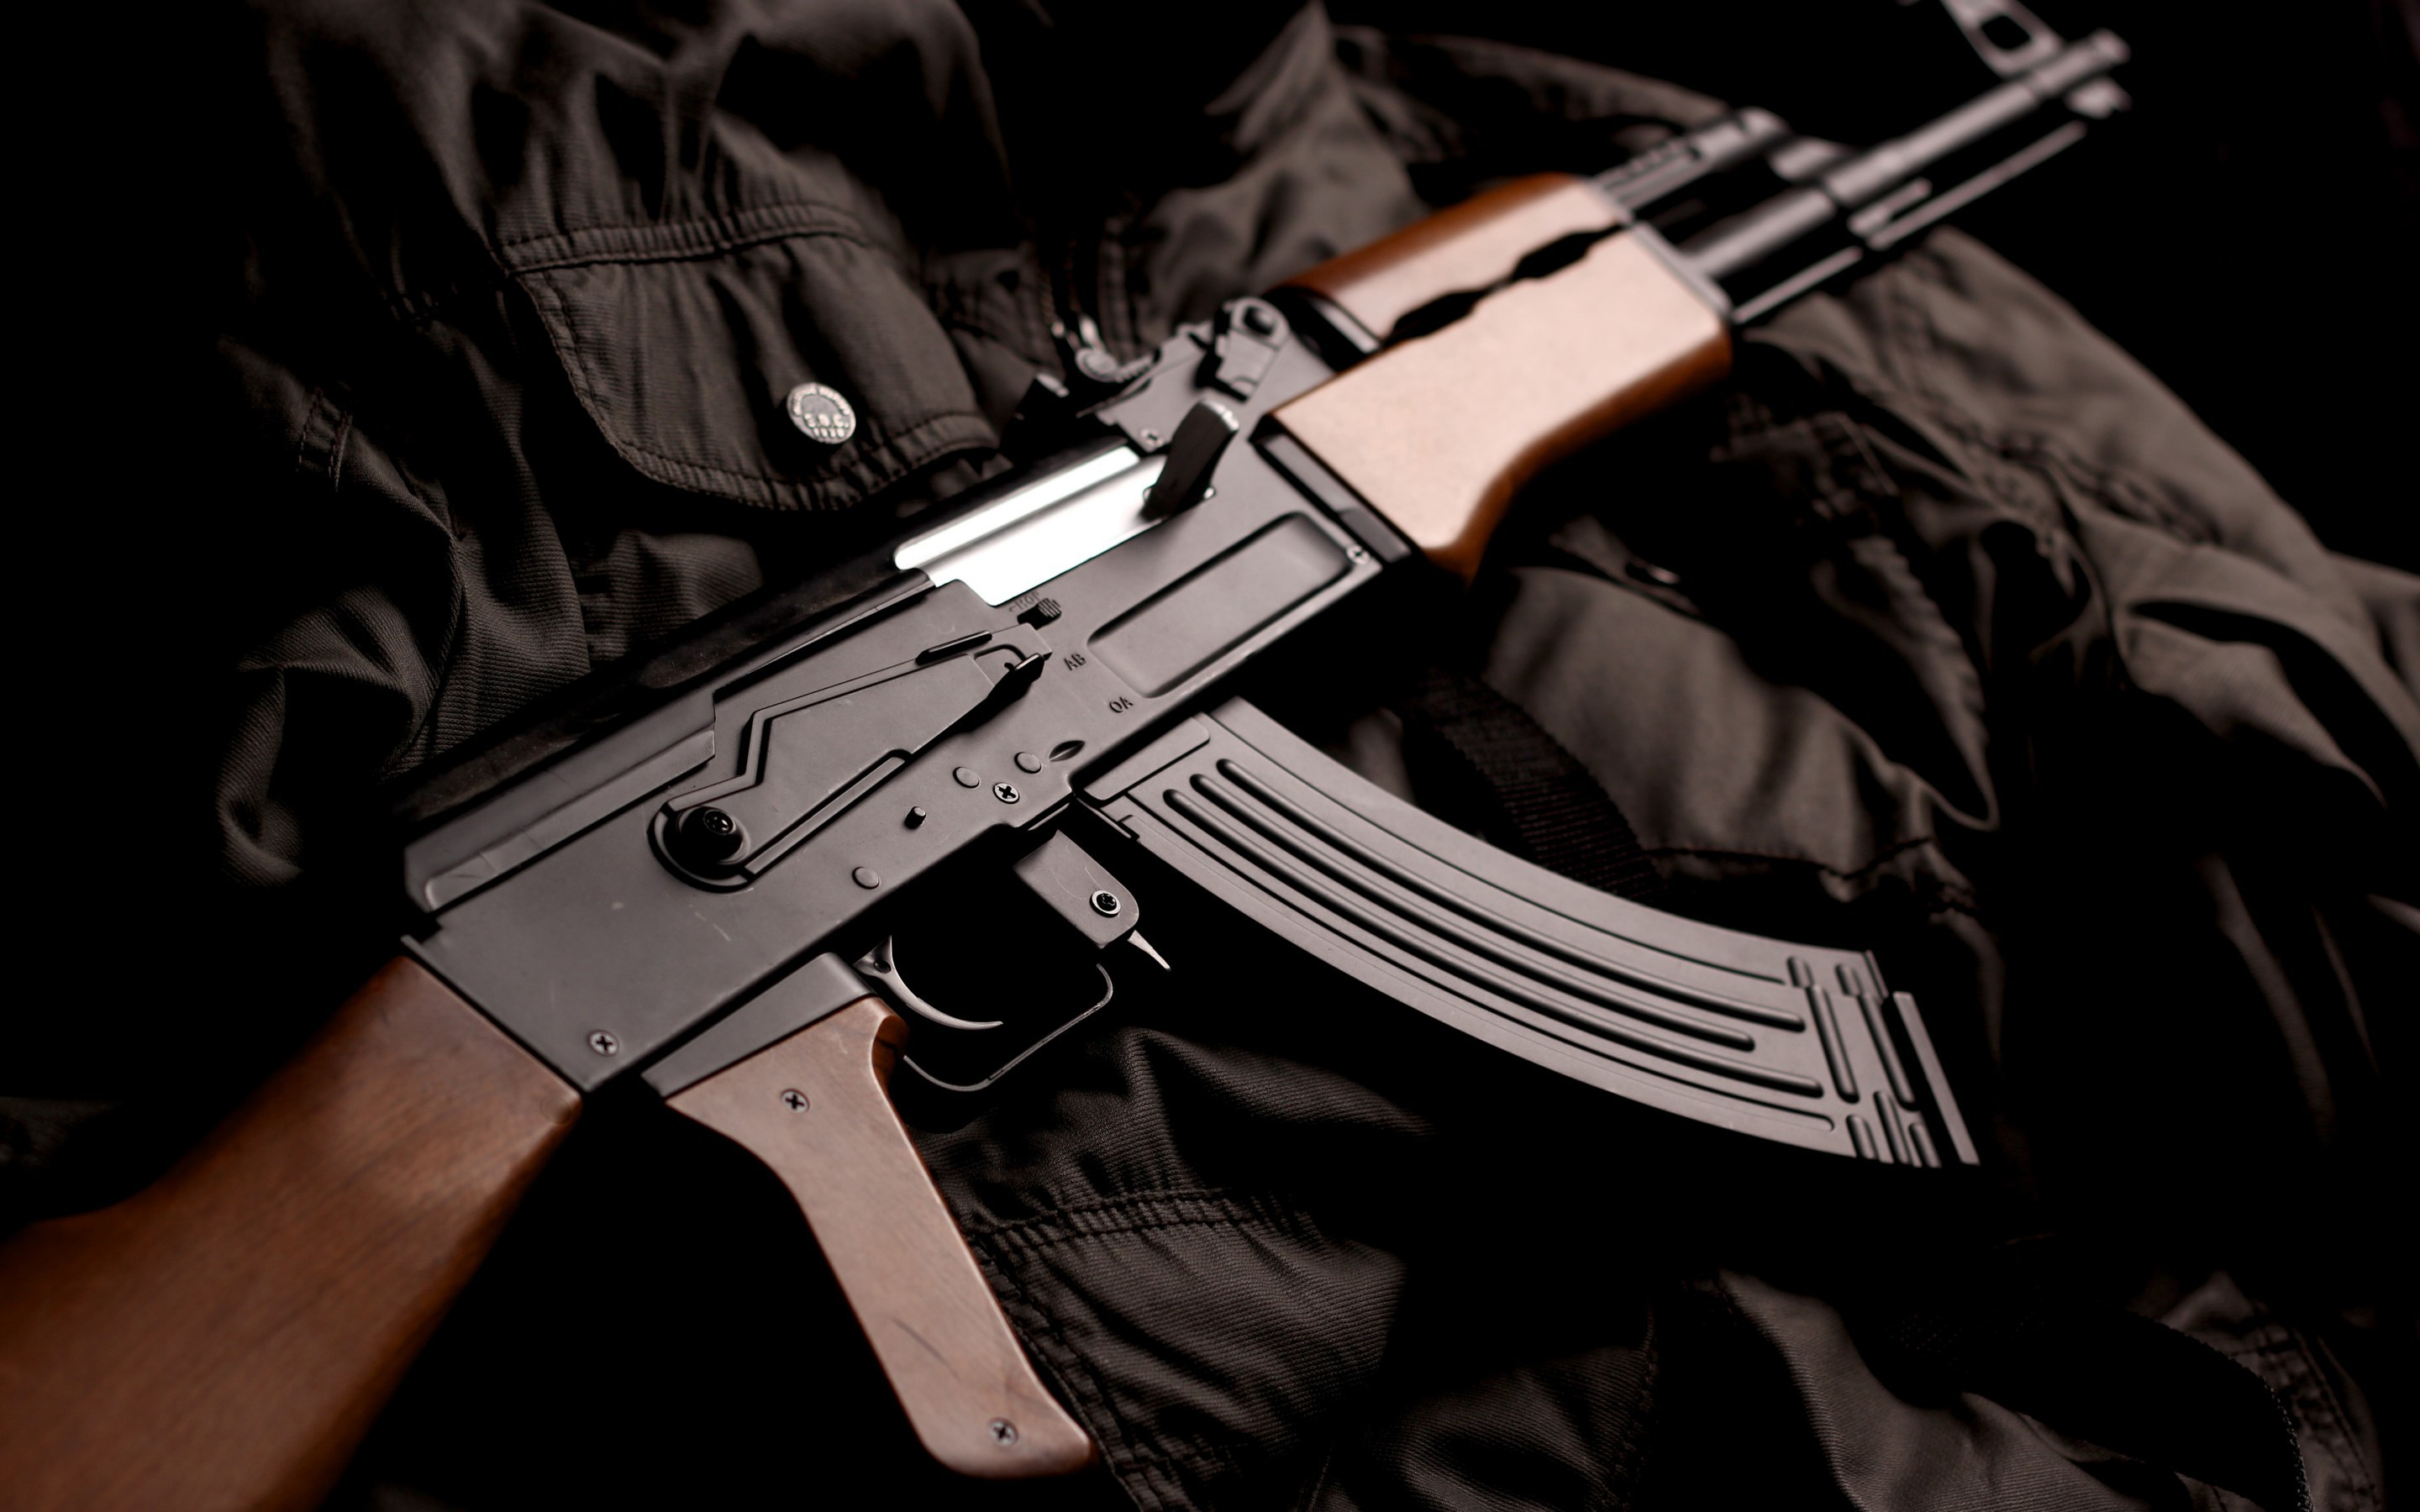 Ak 47 wallpapers images photos pictures backgrounds - Wallpapers guns free download ...